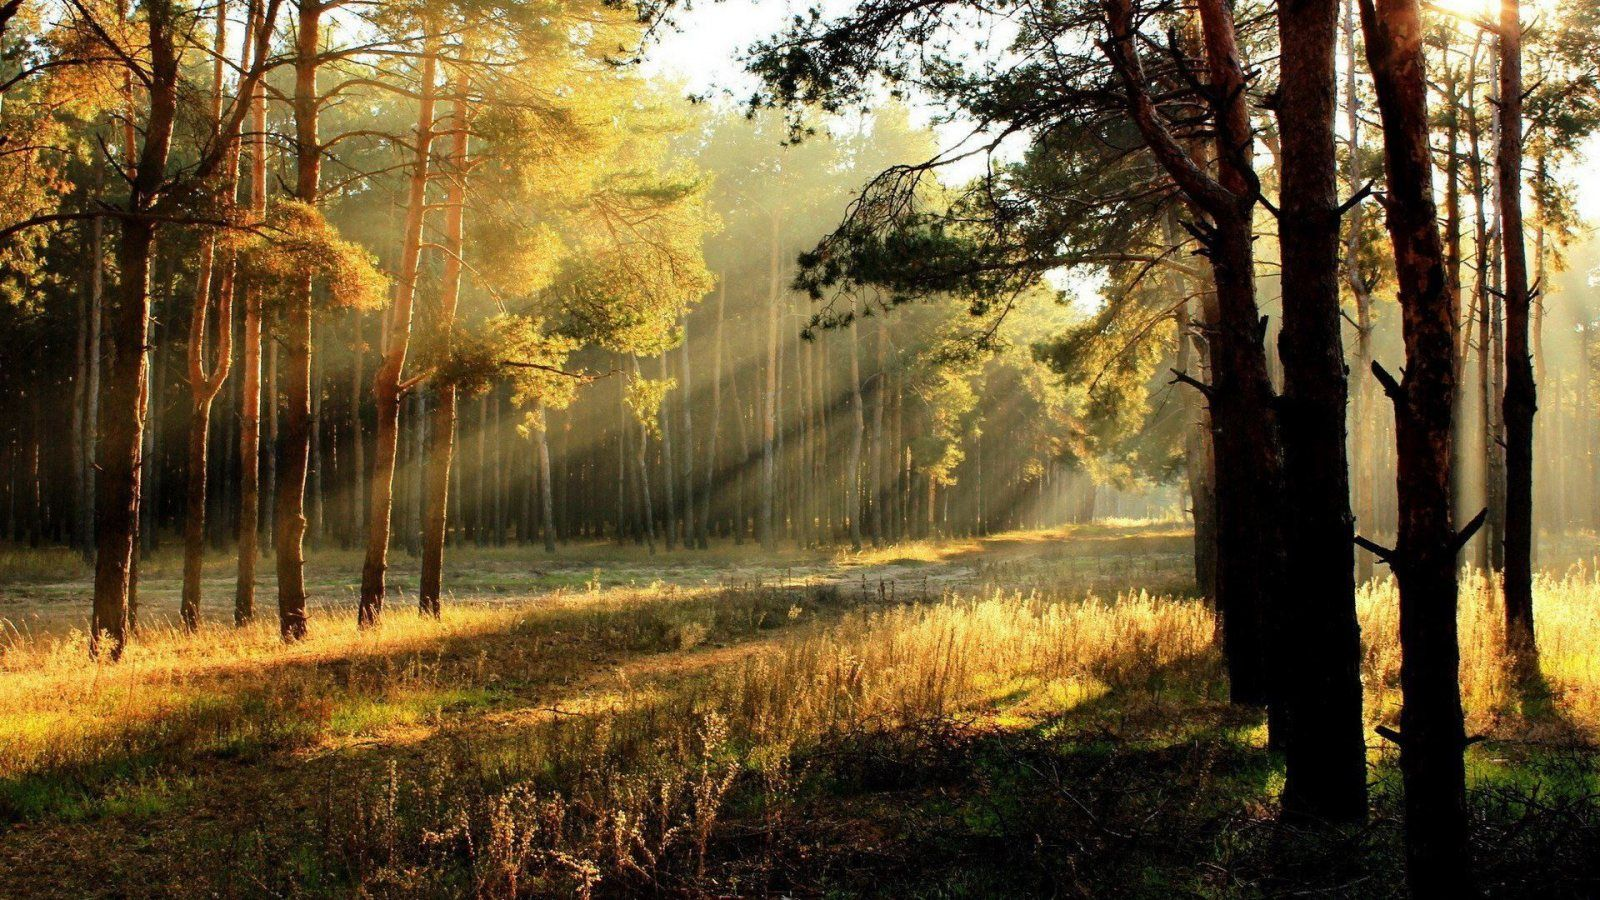 Sun Rays Through Forest Trees Hd Wallpaper Slwallpapers Sunrise Landscape Forest Landscape Autumn Landscape Wallpaper rays of light trees autumn